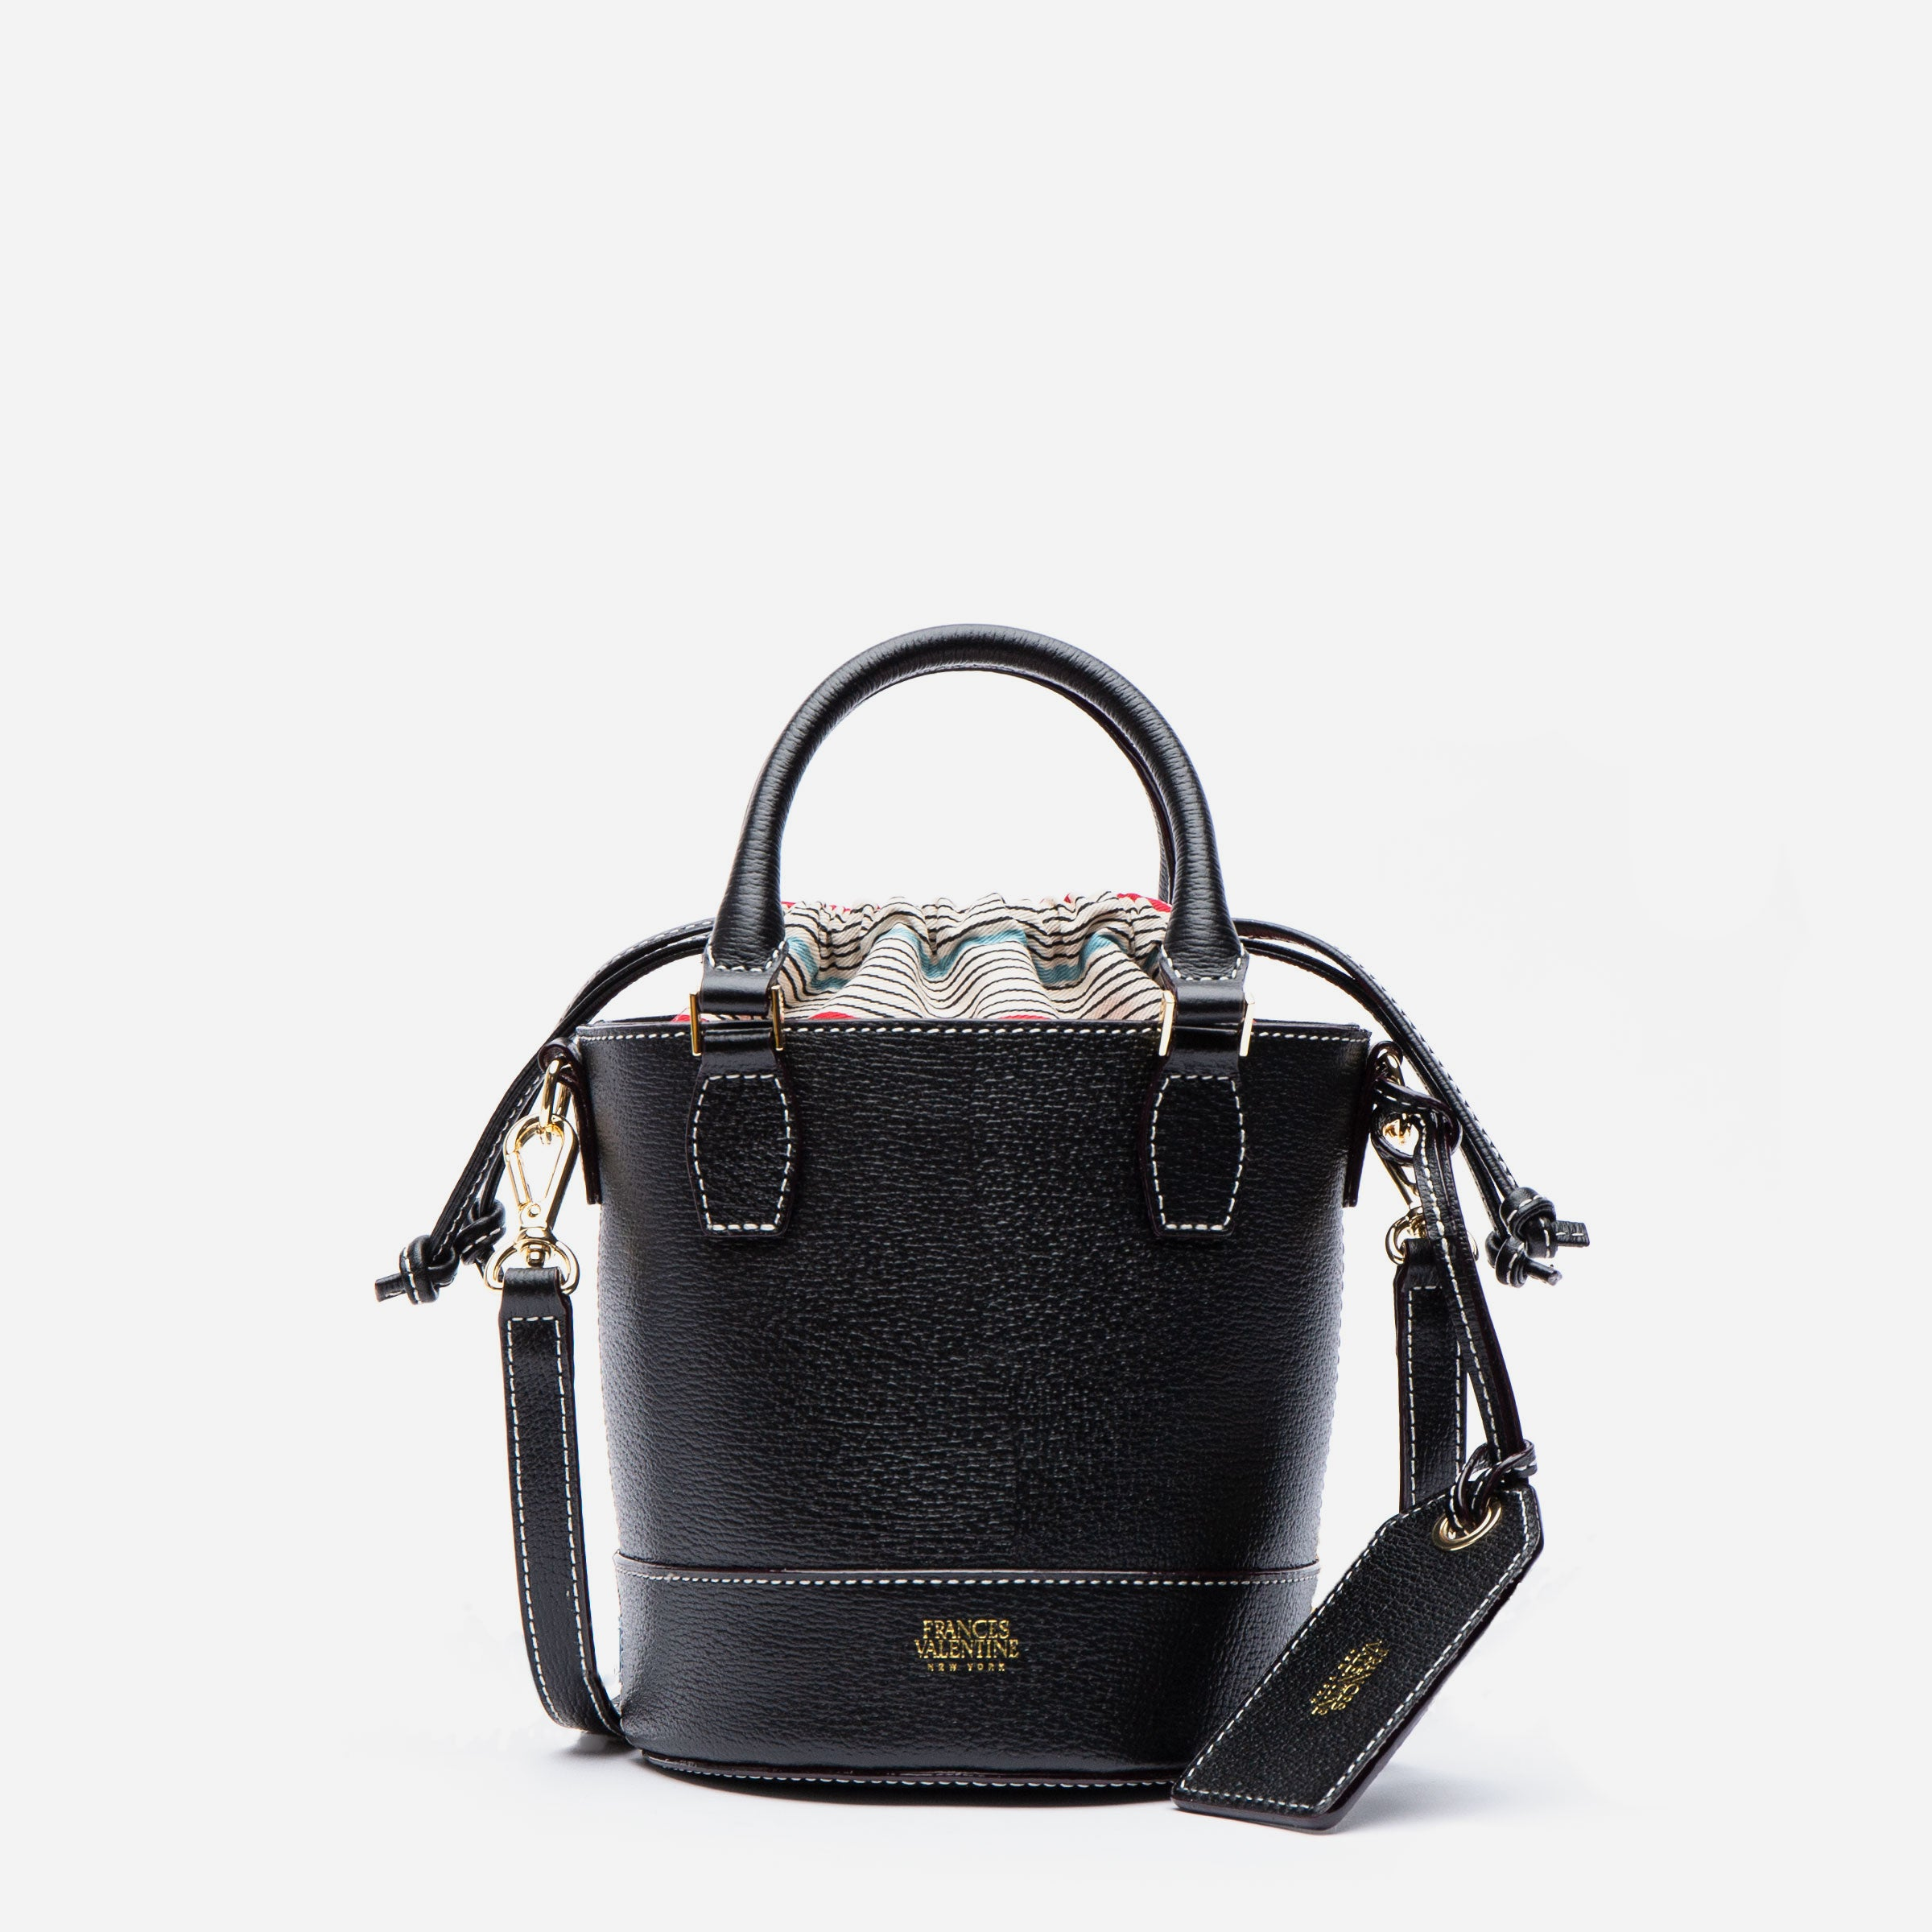 Small Bucket Bag Boarskin Black - Frances Valentine